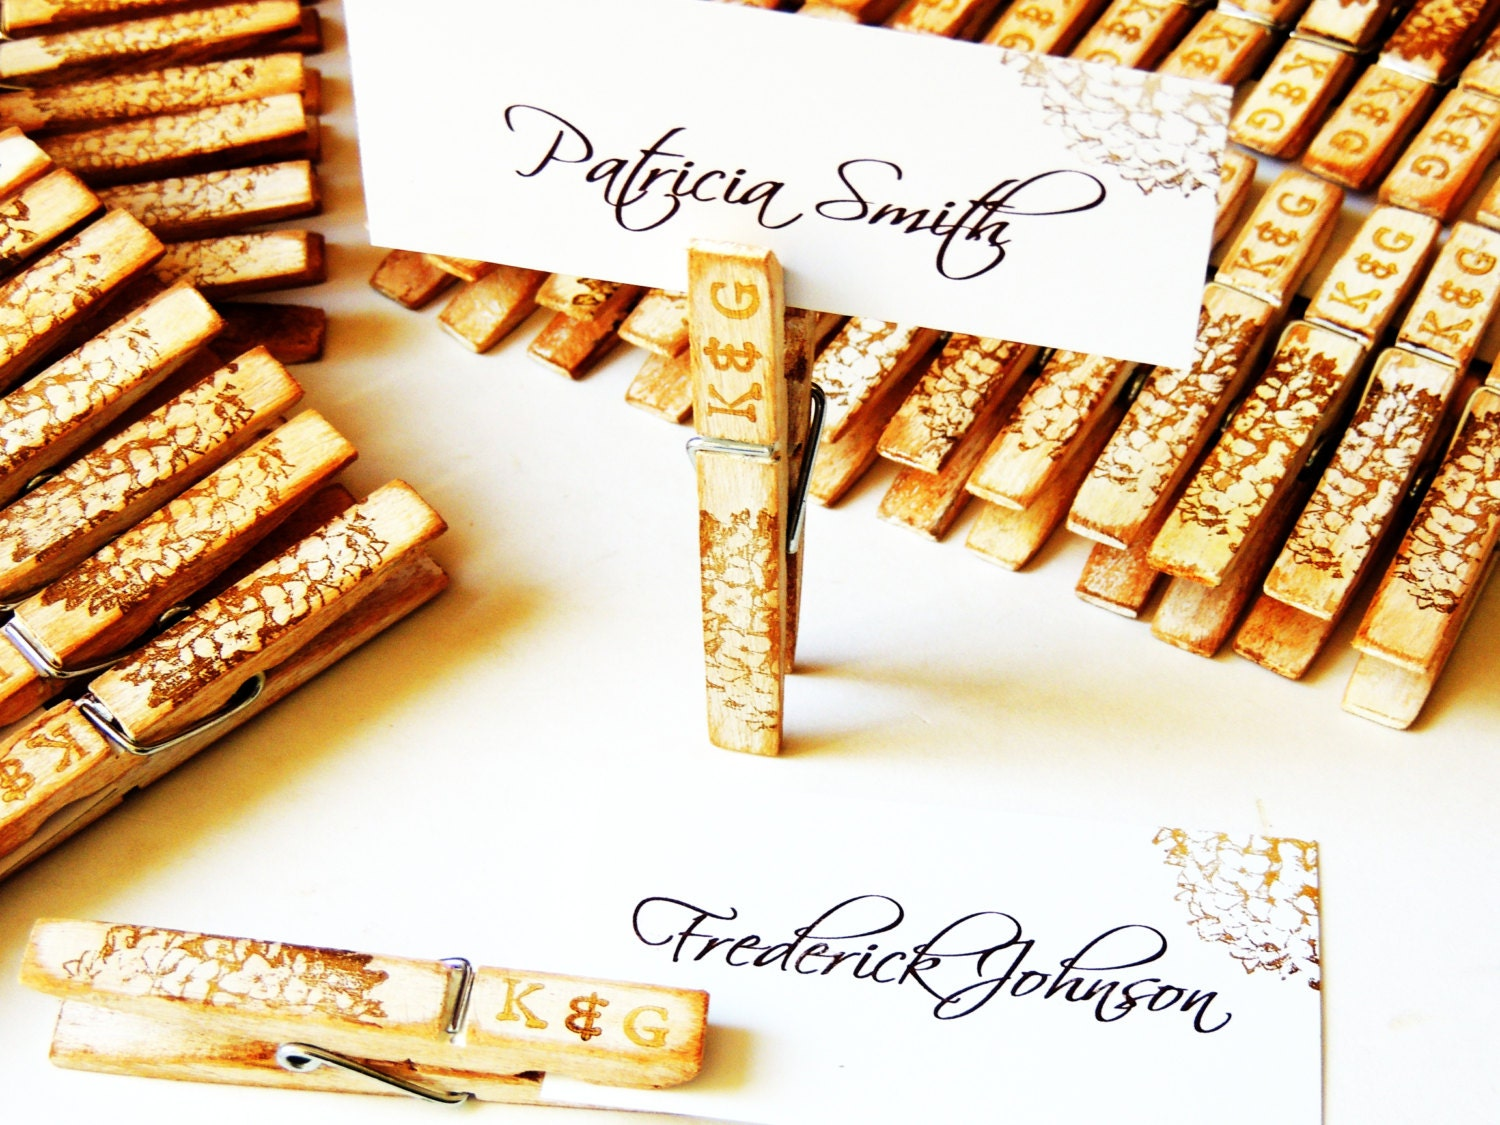 Wood wedding place card placecard holder personalized zoom solutioingenieria Gallery